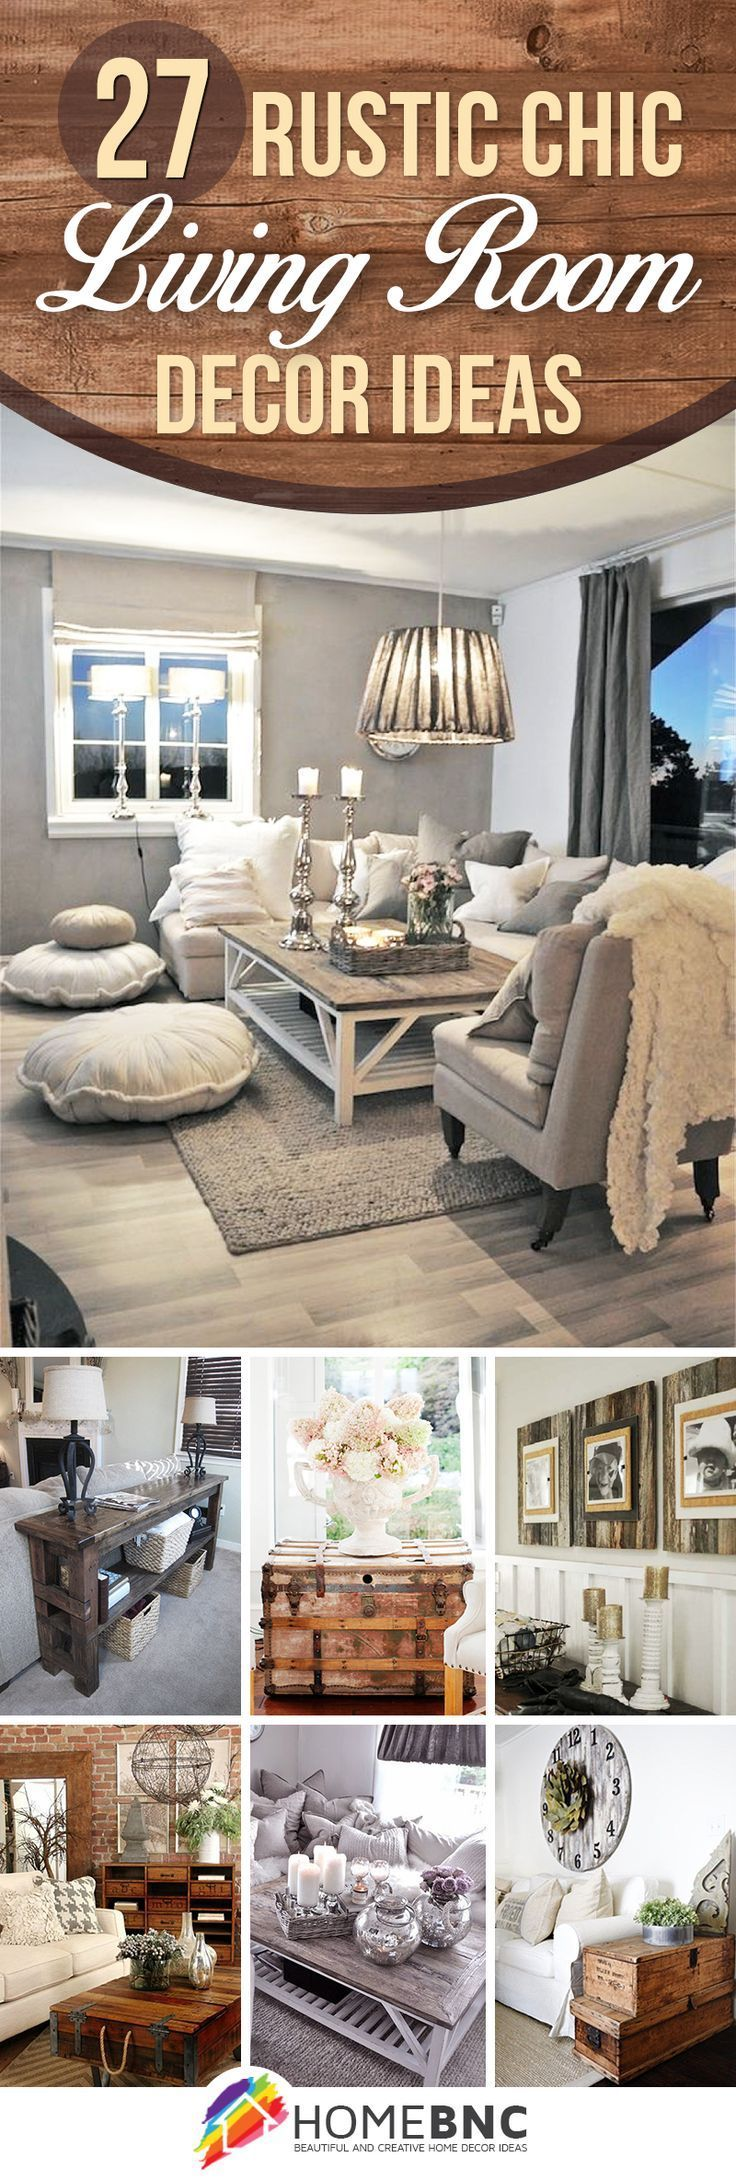 Rustic Chic Living Room Ideas...